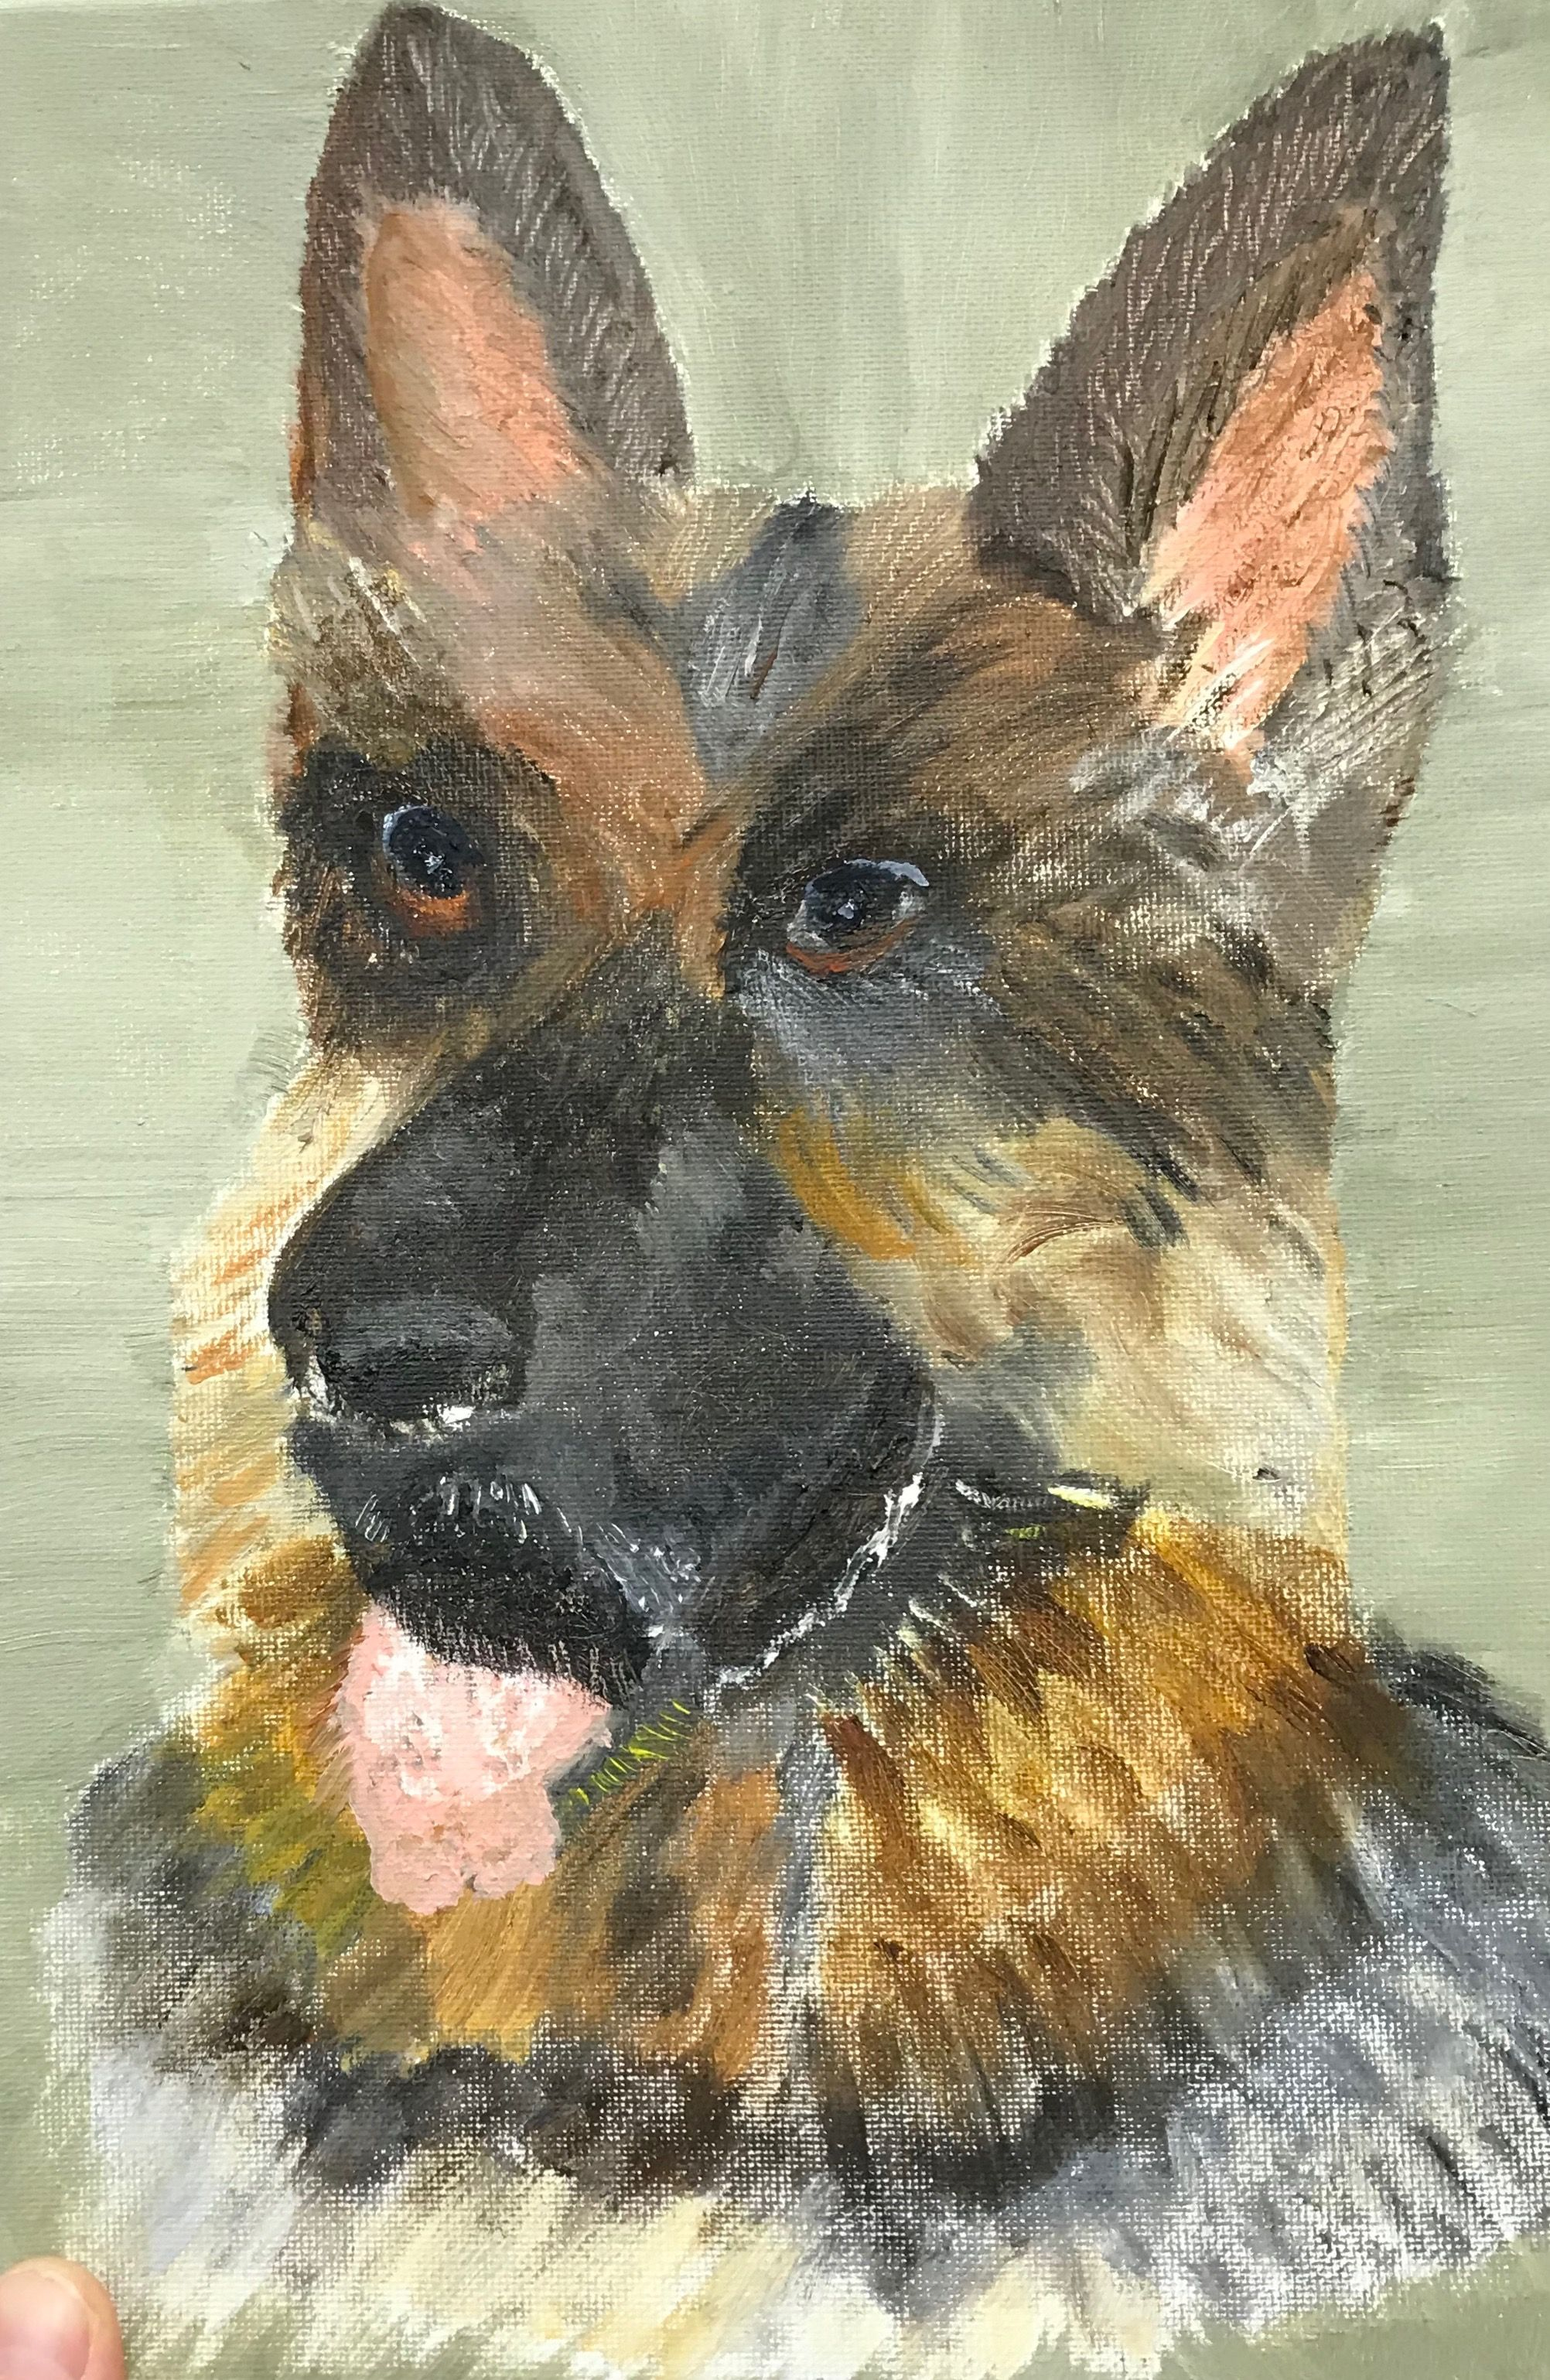 Water soluble oil painting of German Shepherd dog by Dupont